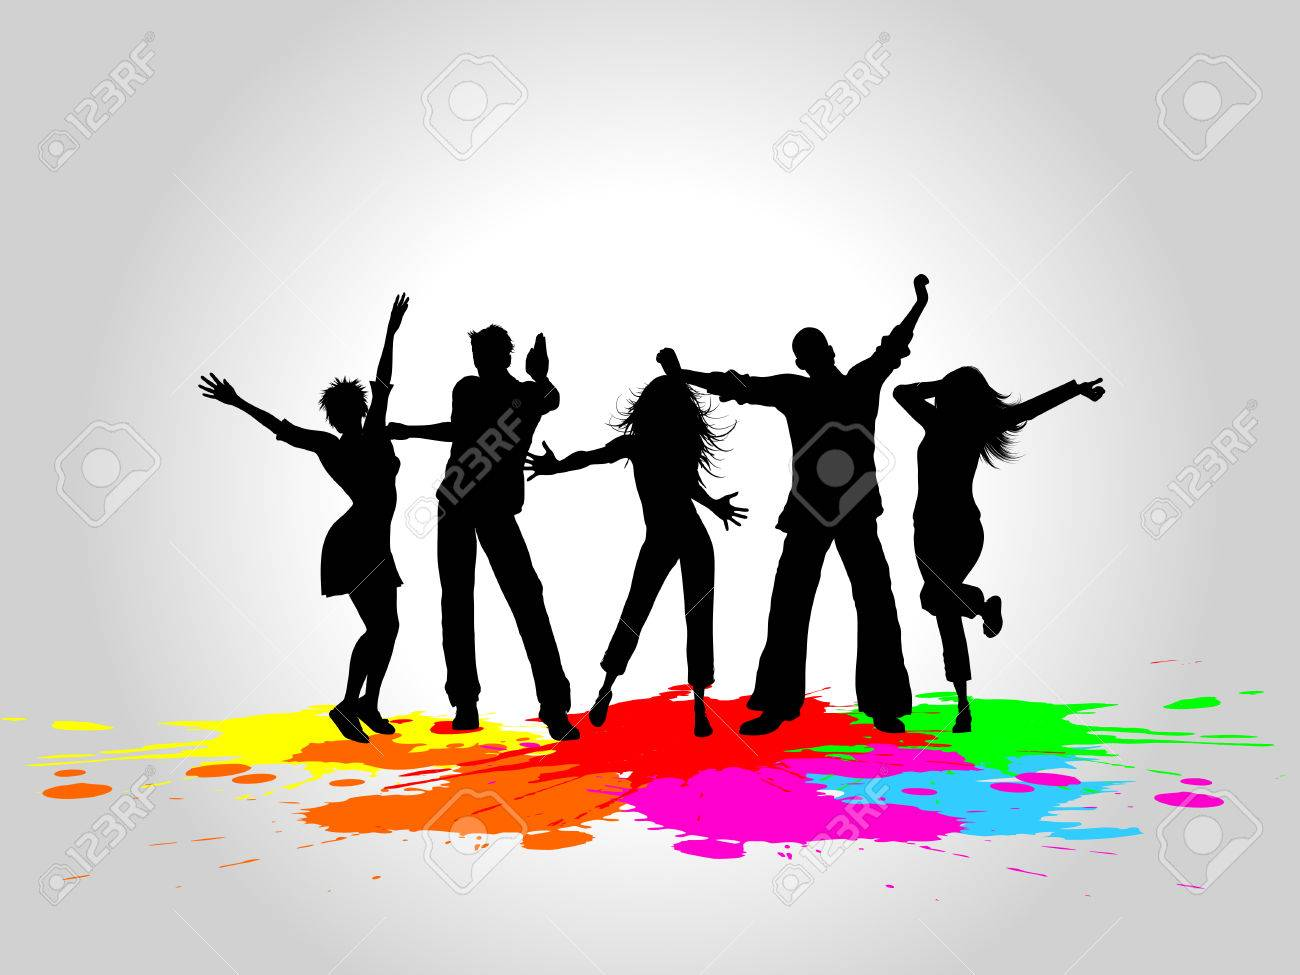 Silhouettes of people dancing on a grunge background Stock Vector - 7199583